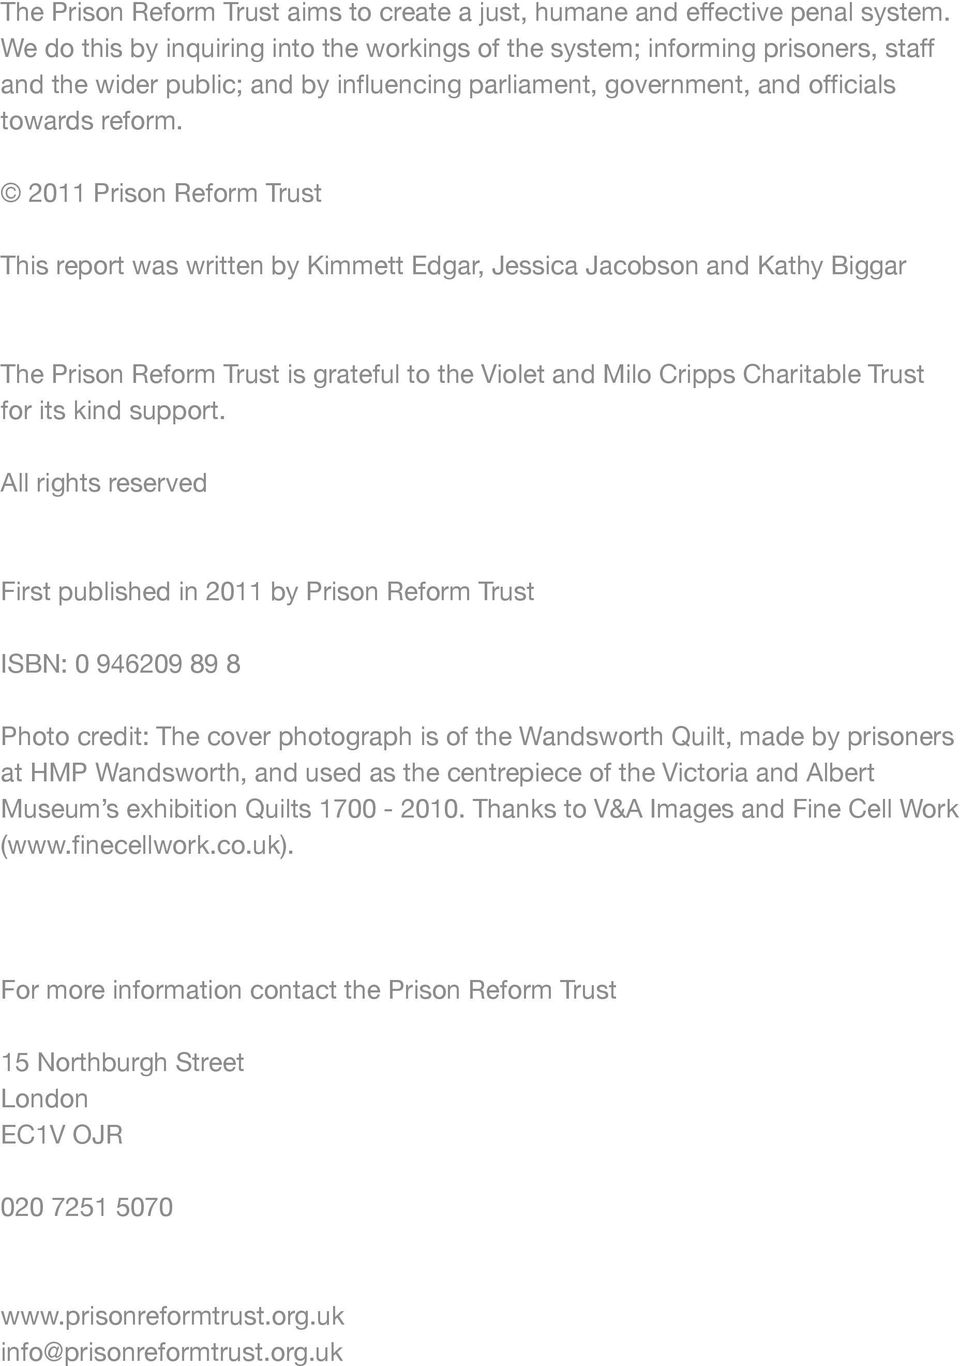 2011 Prison Reform Trust This report was written by Kimmett Edgar, Jessica Jacobson and Kathy Biggar The Prison Reform Trust is grateful to the Violet and Milo Cripps Charitable Trust for its kind